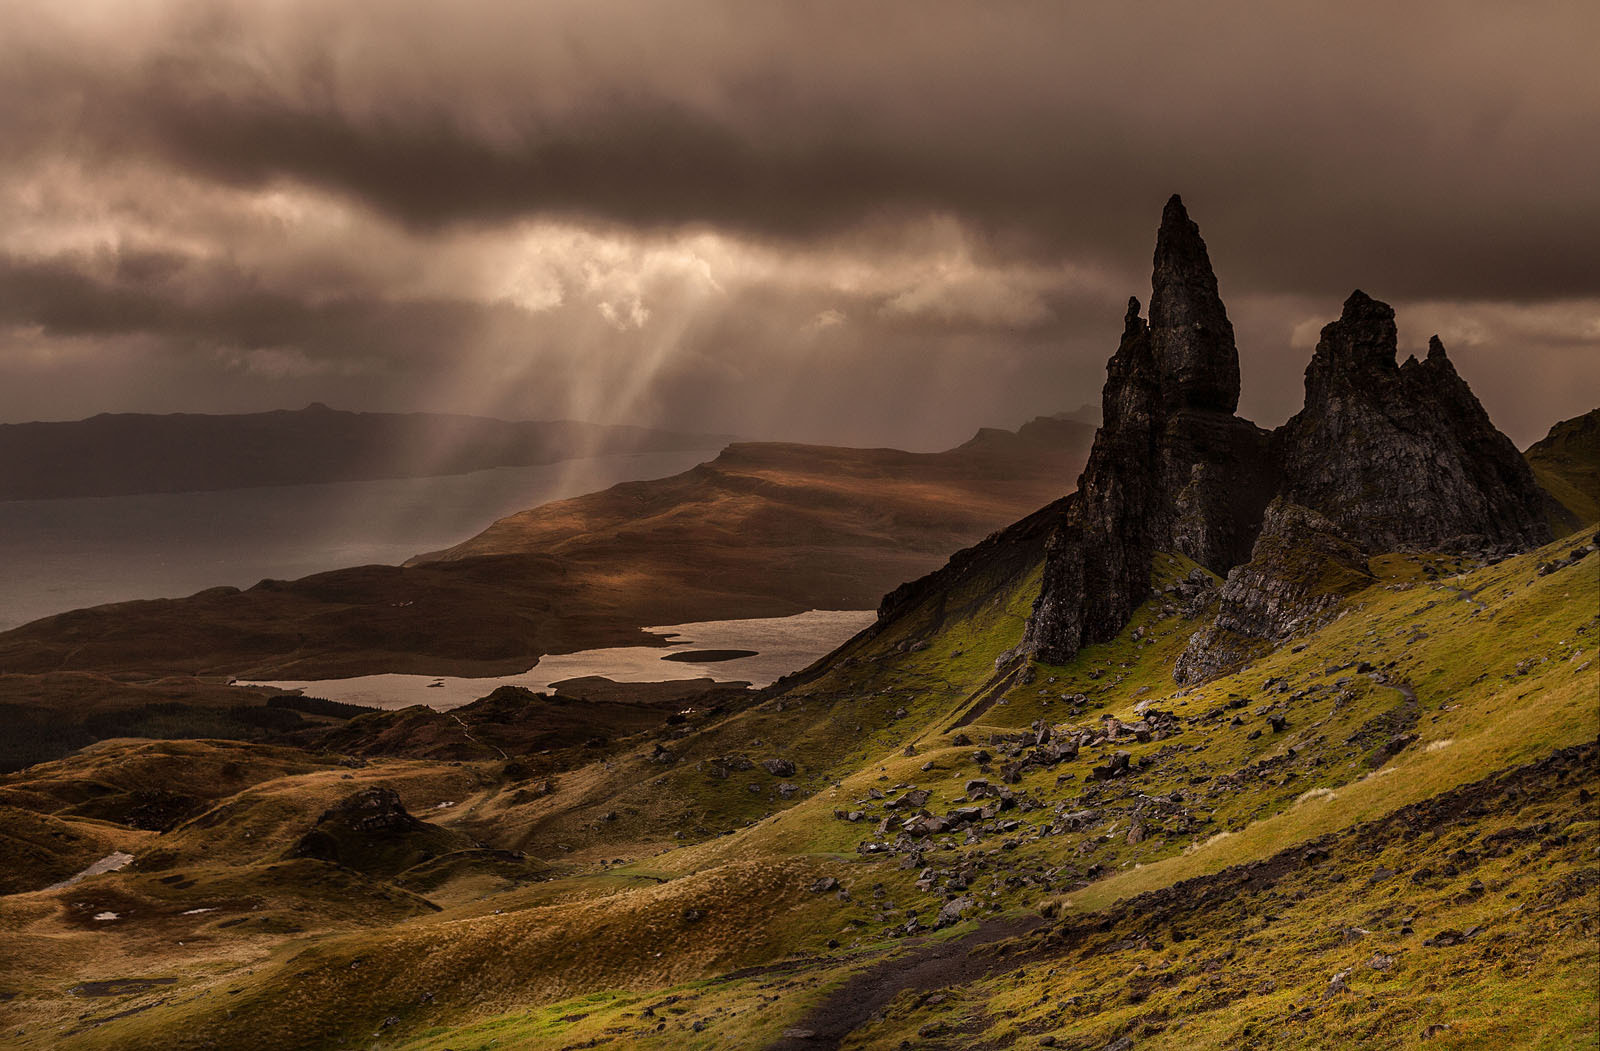 Photograph Old Man of Storr by Natalia Eriksson on 500px